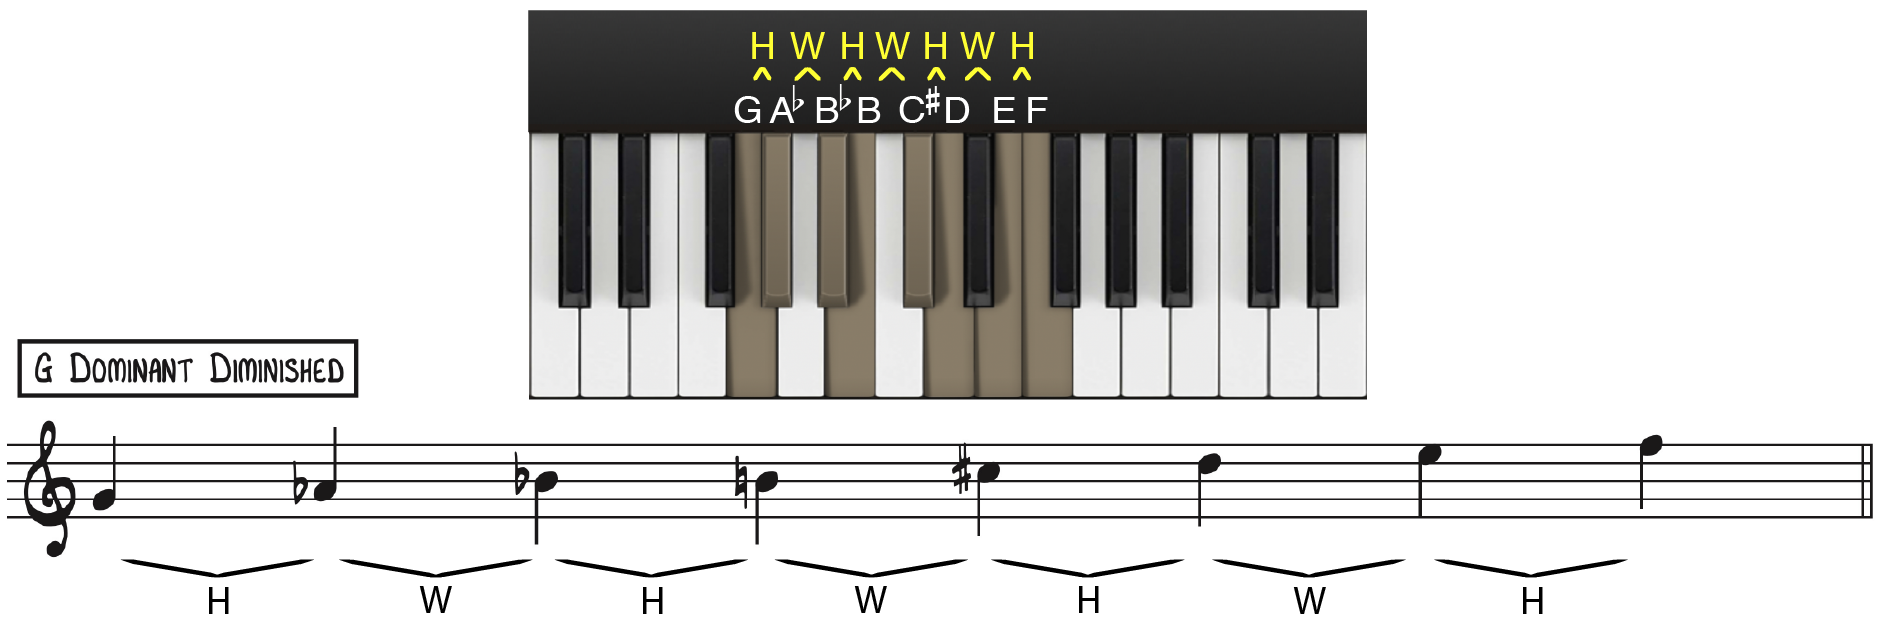 G Dominant Diminished Scale Diagram